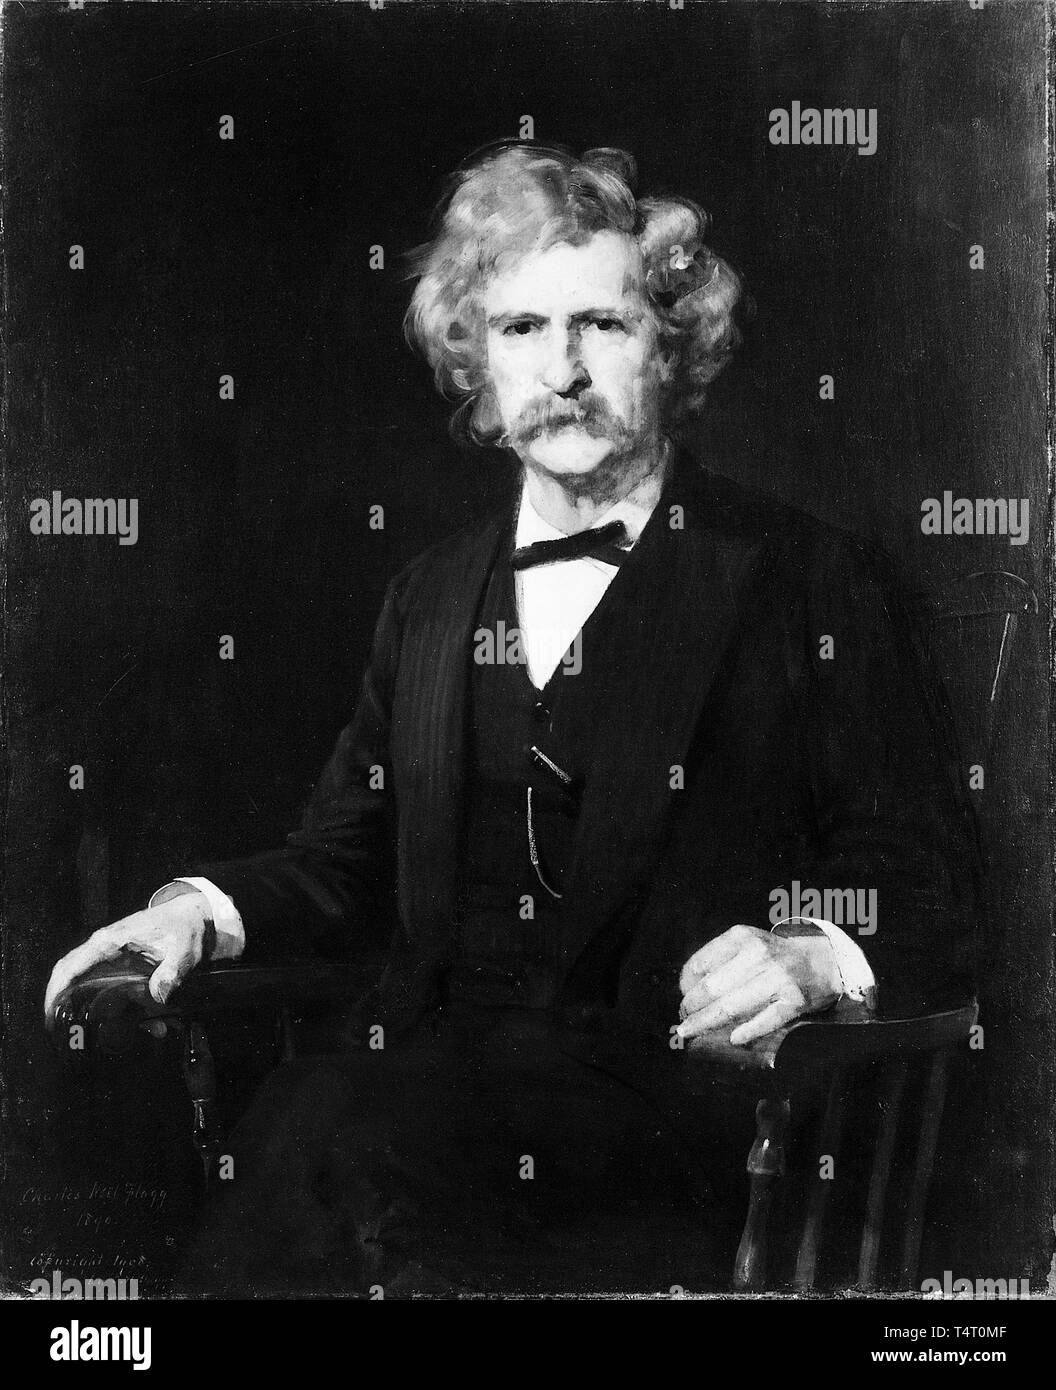 Mark Twain (1835-1910), portrait painting by Charles Noel Flagg, 1890 - Stock Image